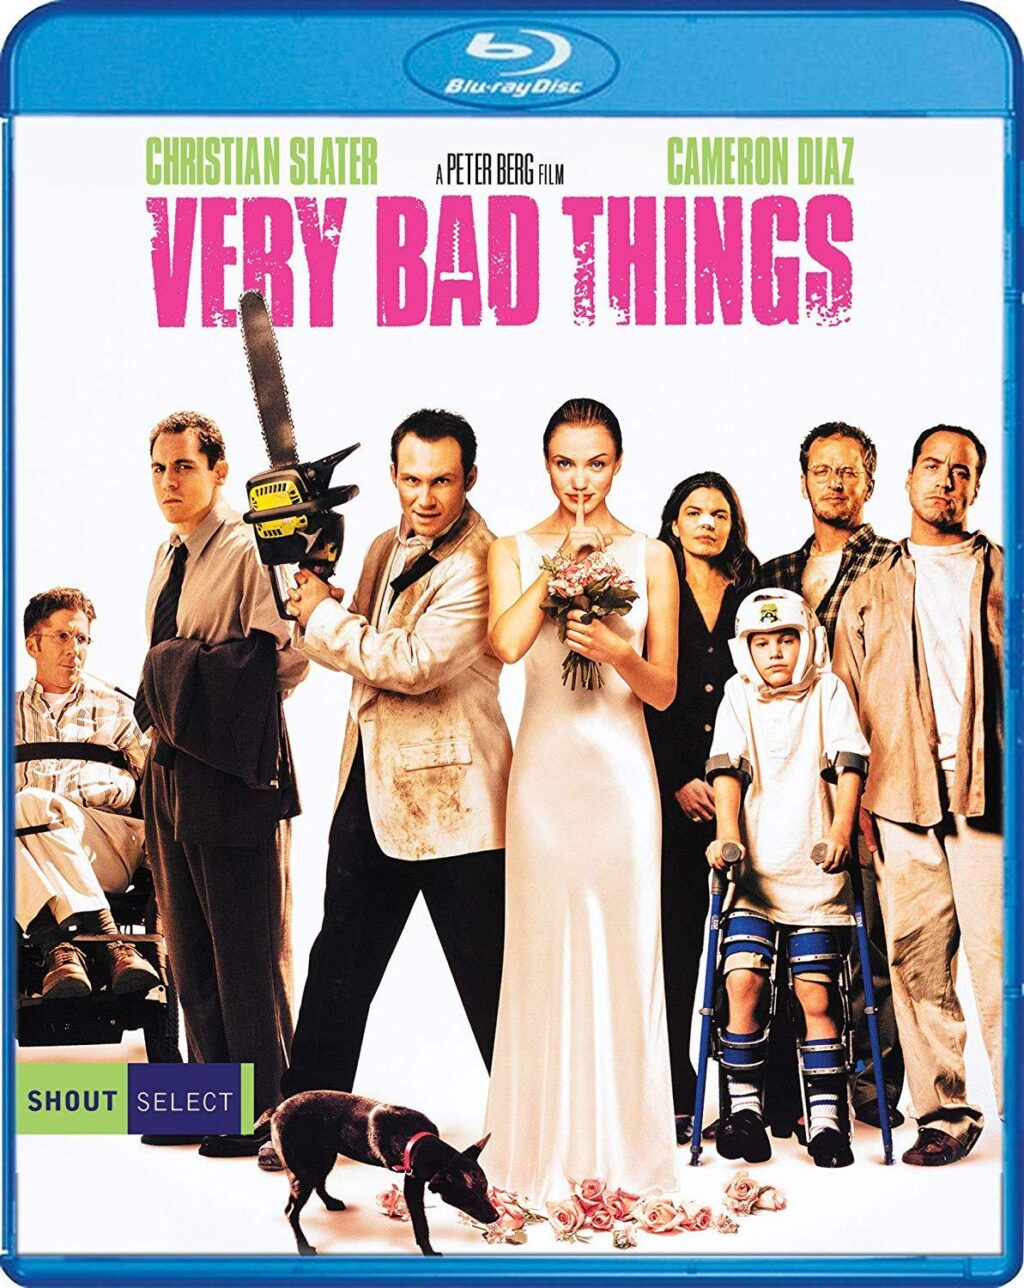 Very Bad Things Blu ray DC 1024x1288 - VERY BAD THINGS Are Coming to Blu-ray in January